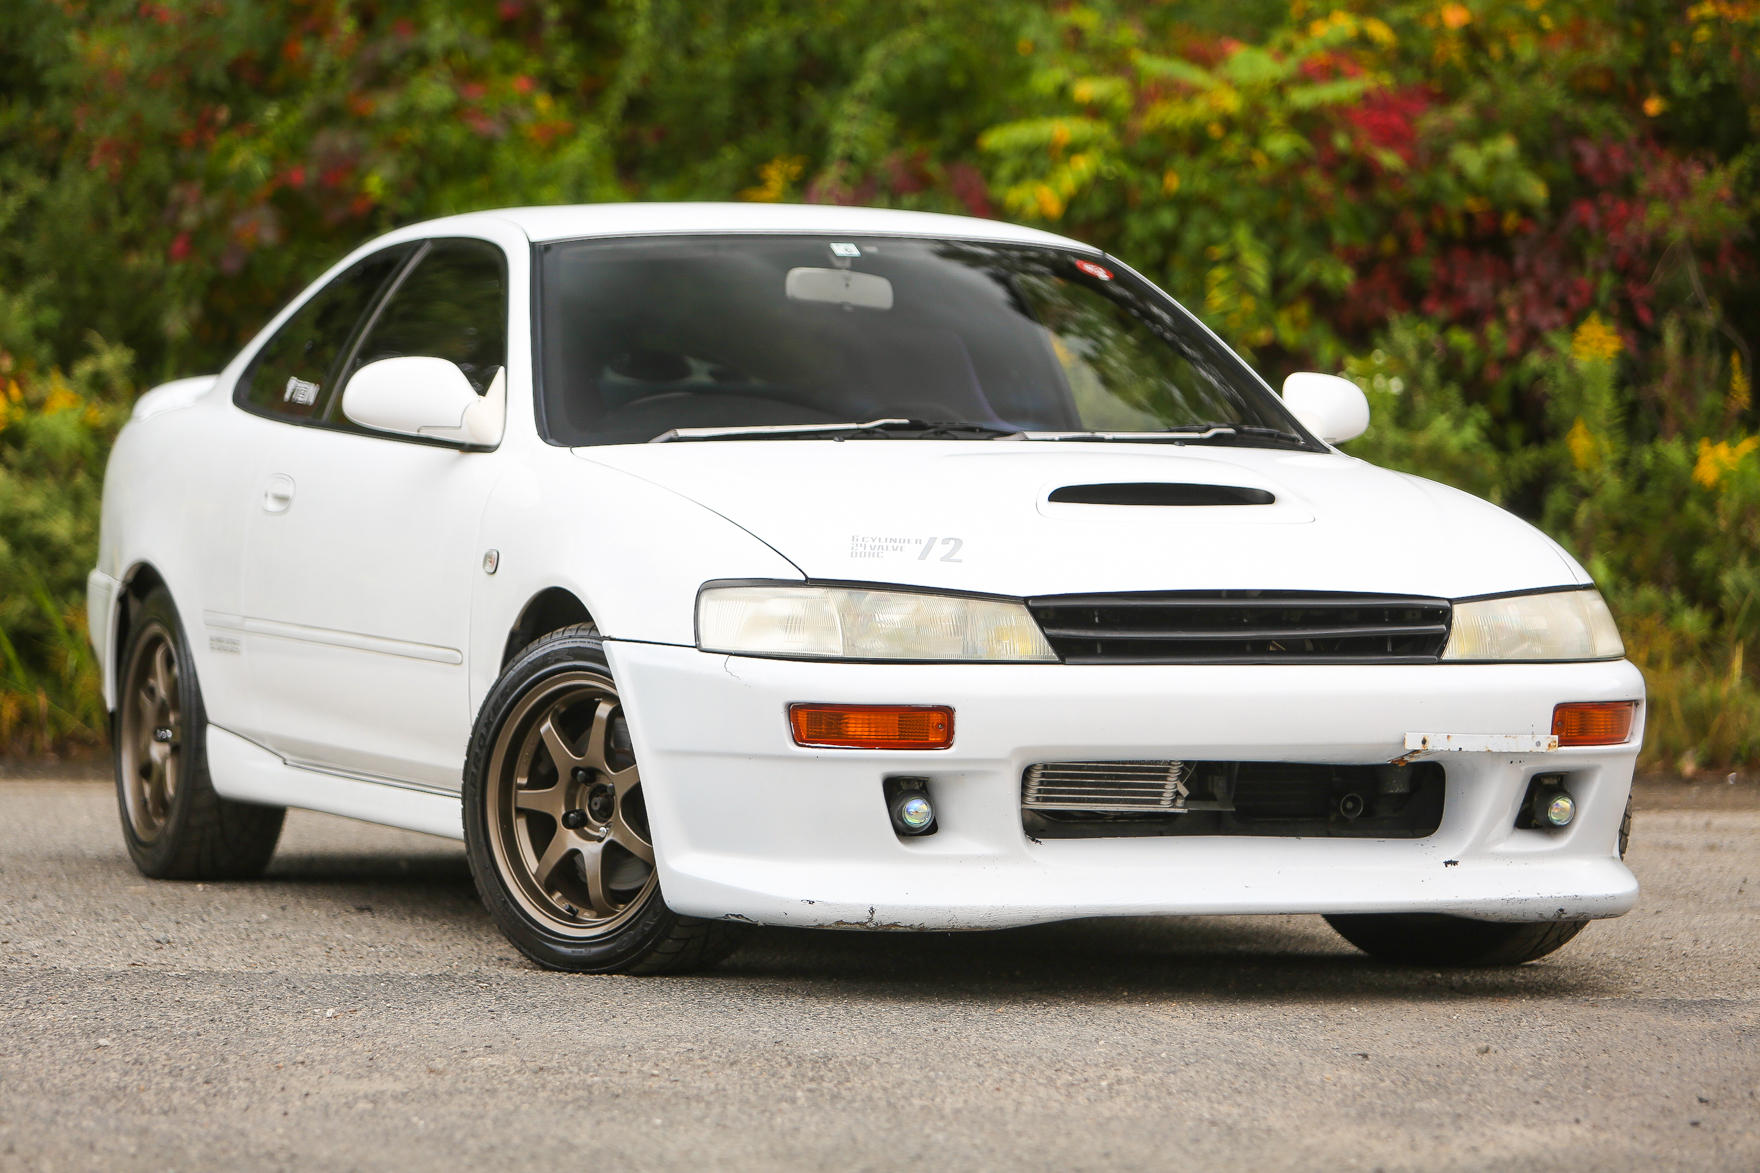 1992 Toyota Levin GT-Z Supercharged - Price Reduced!! $14,500